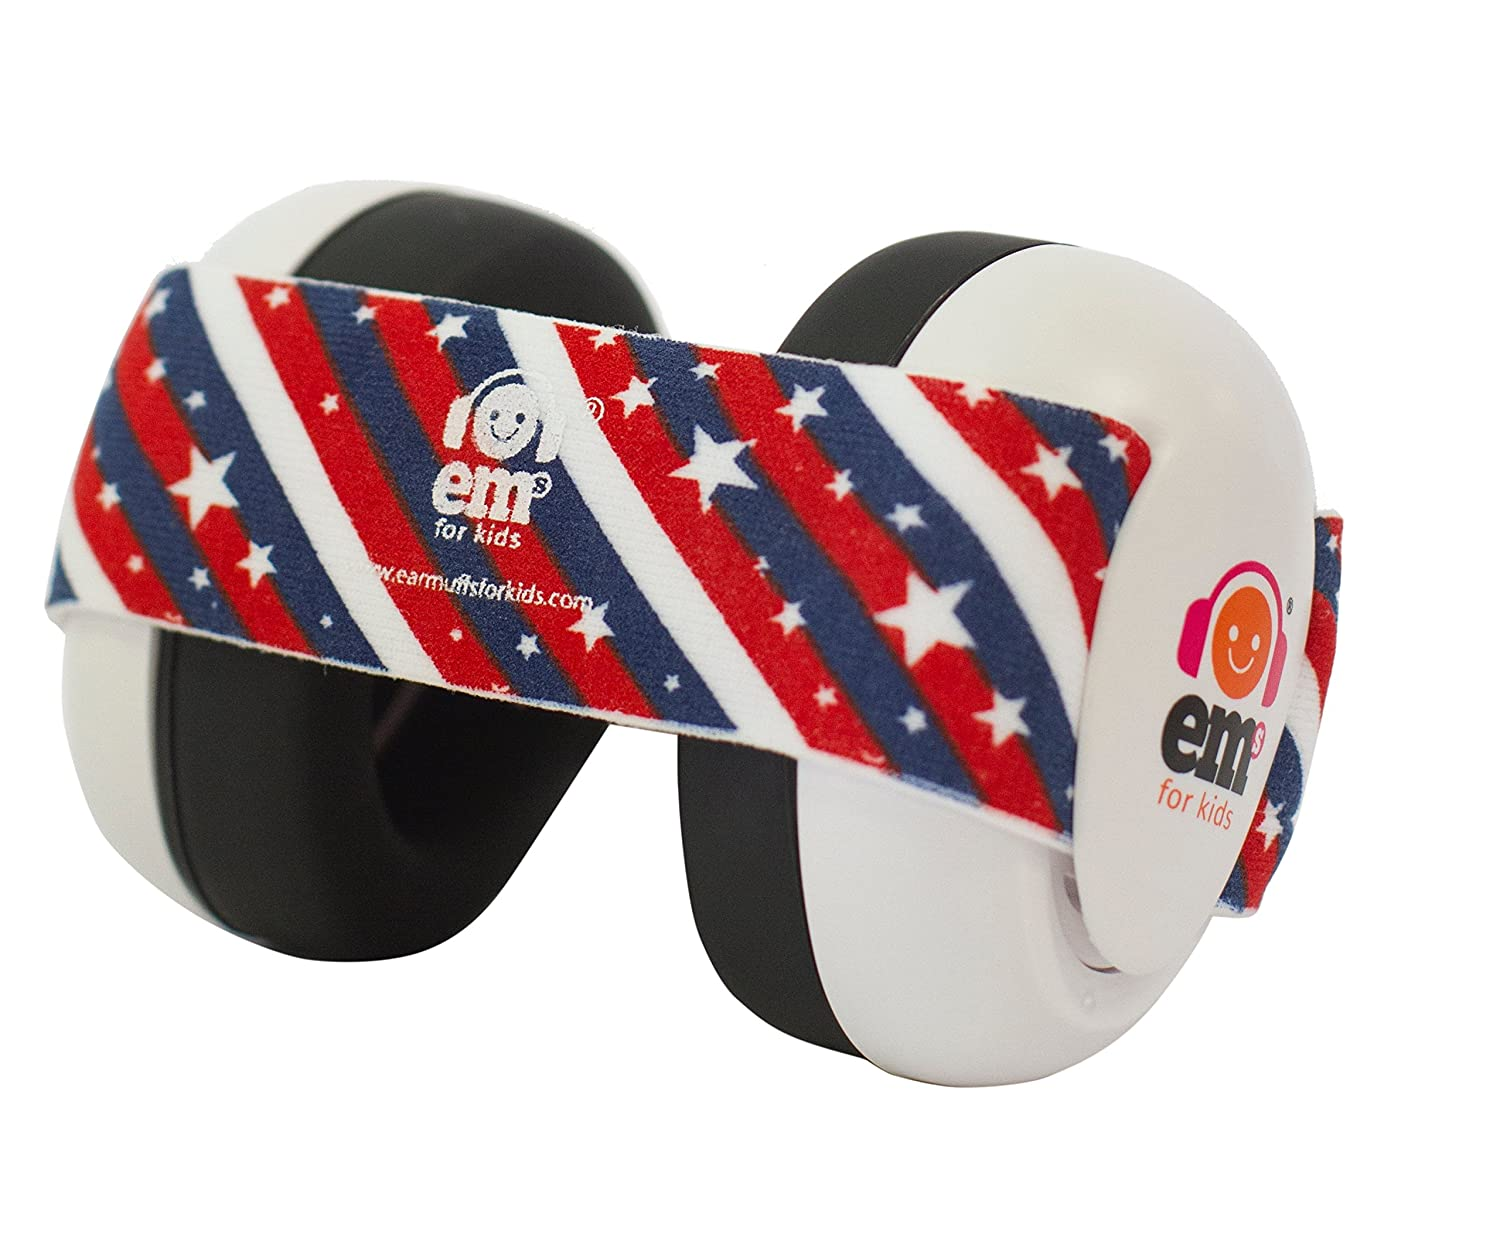 Ems for Kids Baby Earmuffs - White with Stars n Stripes. Made in The U.S.A! The Original and ONLY Earmuffs Designed specifically for Babies Since 2009 EM002